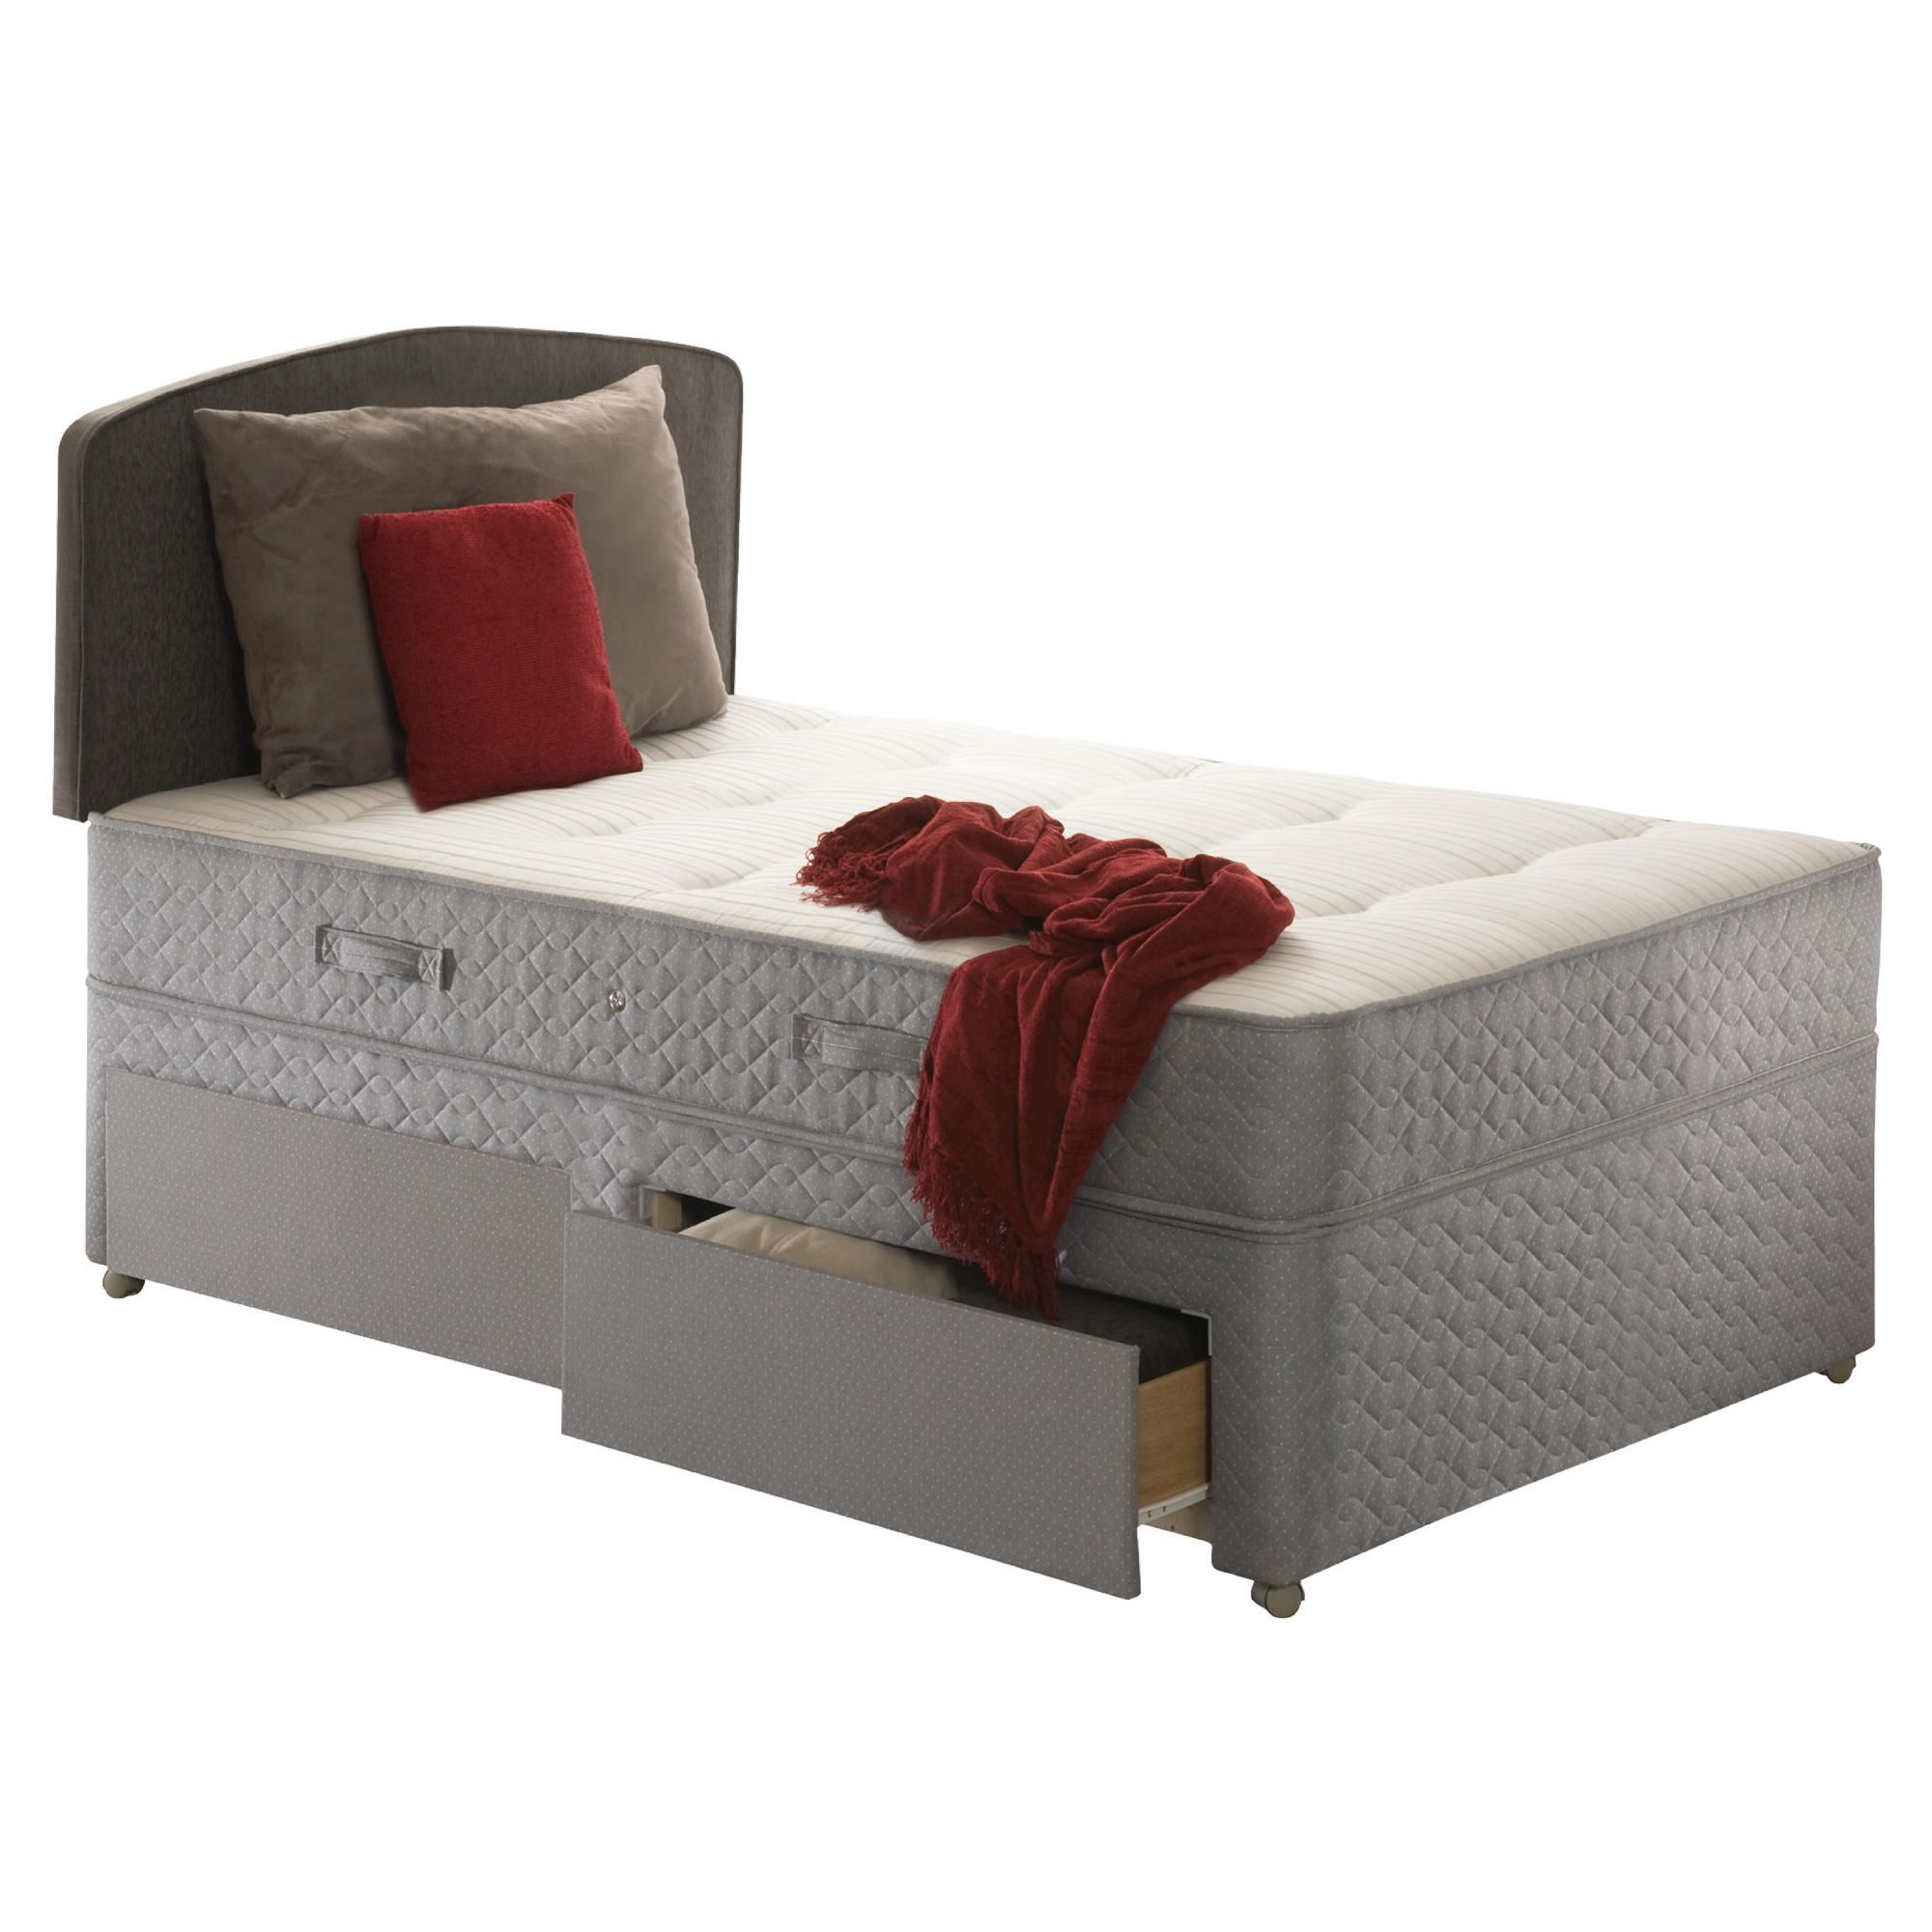 Sealy Posturepedic Ortho Backcare Plus Single 2 Drawer Divan Bed at Tesco Direct